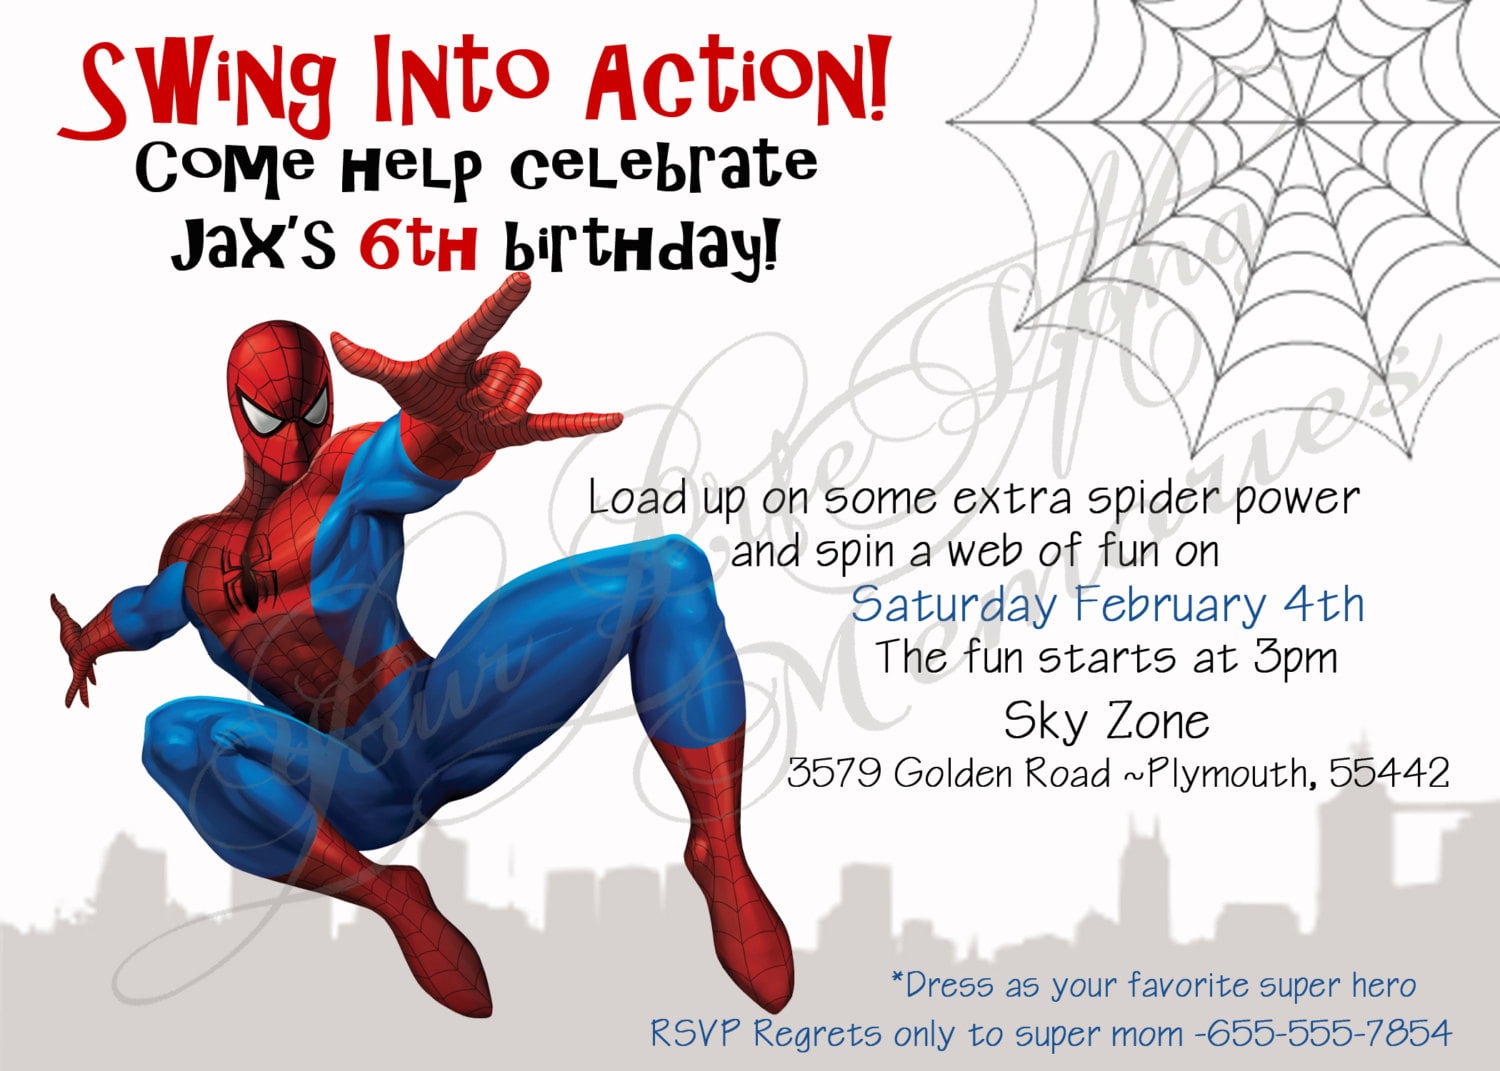 Spiderman Birthday Invitations Ideas Bagvania FREE Printable - Spiderman birthday invitation maker free